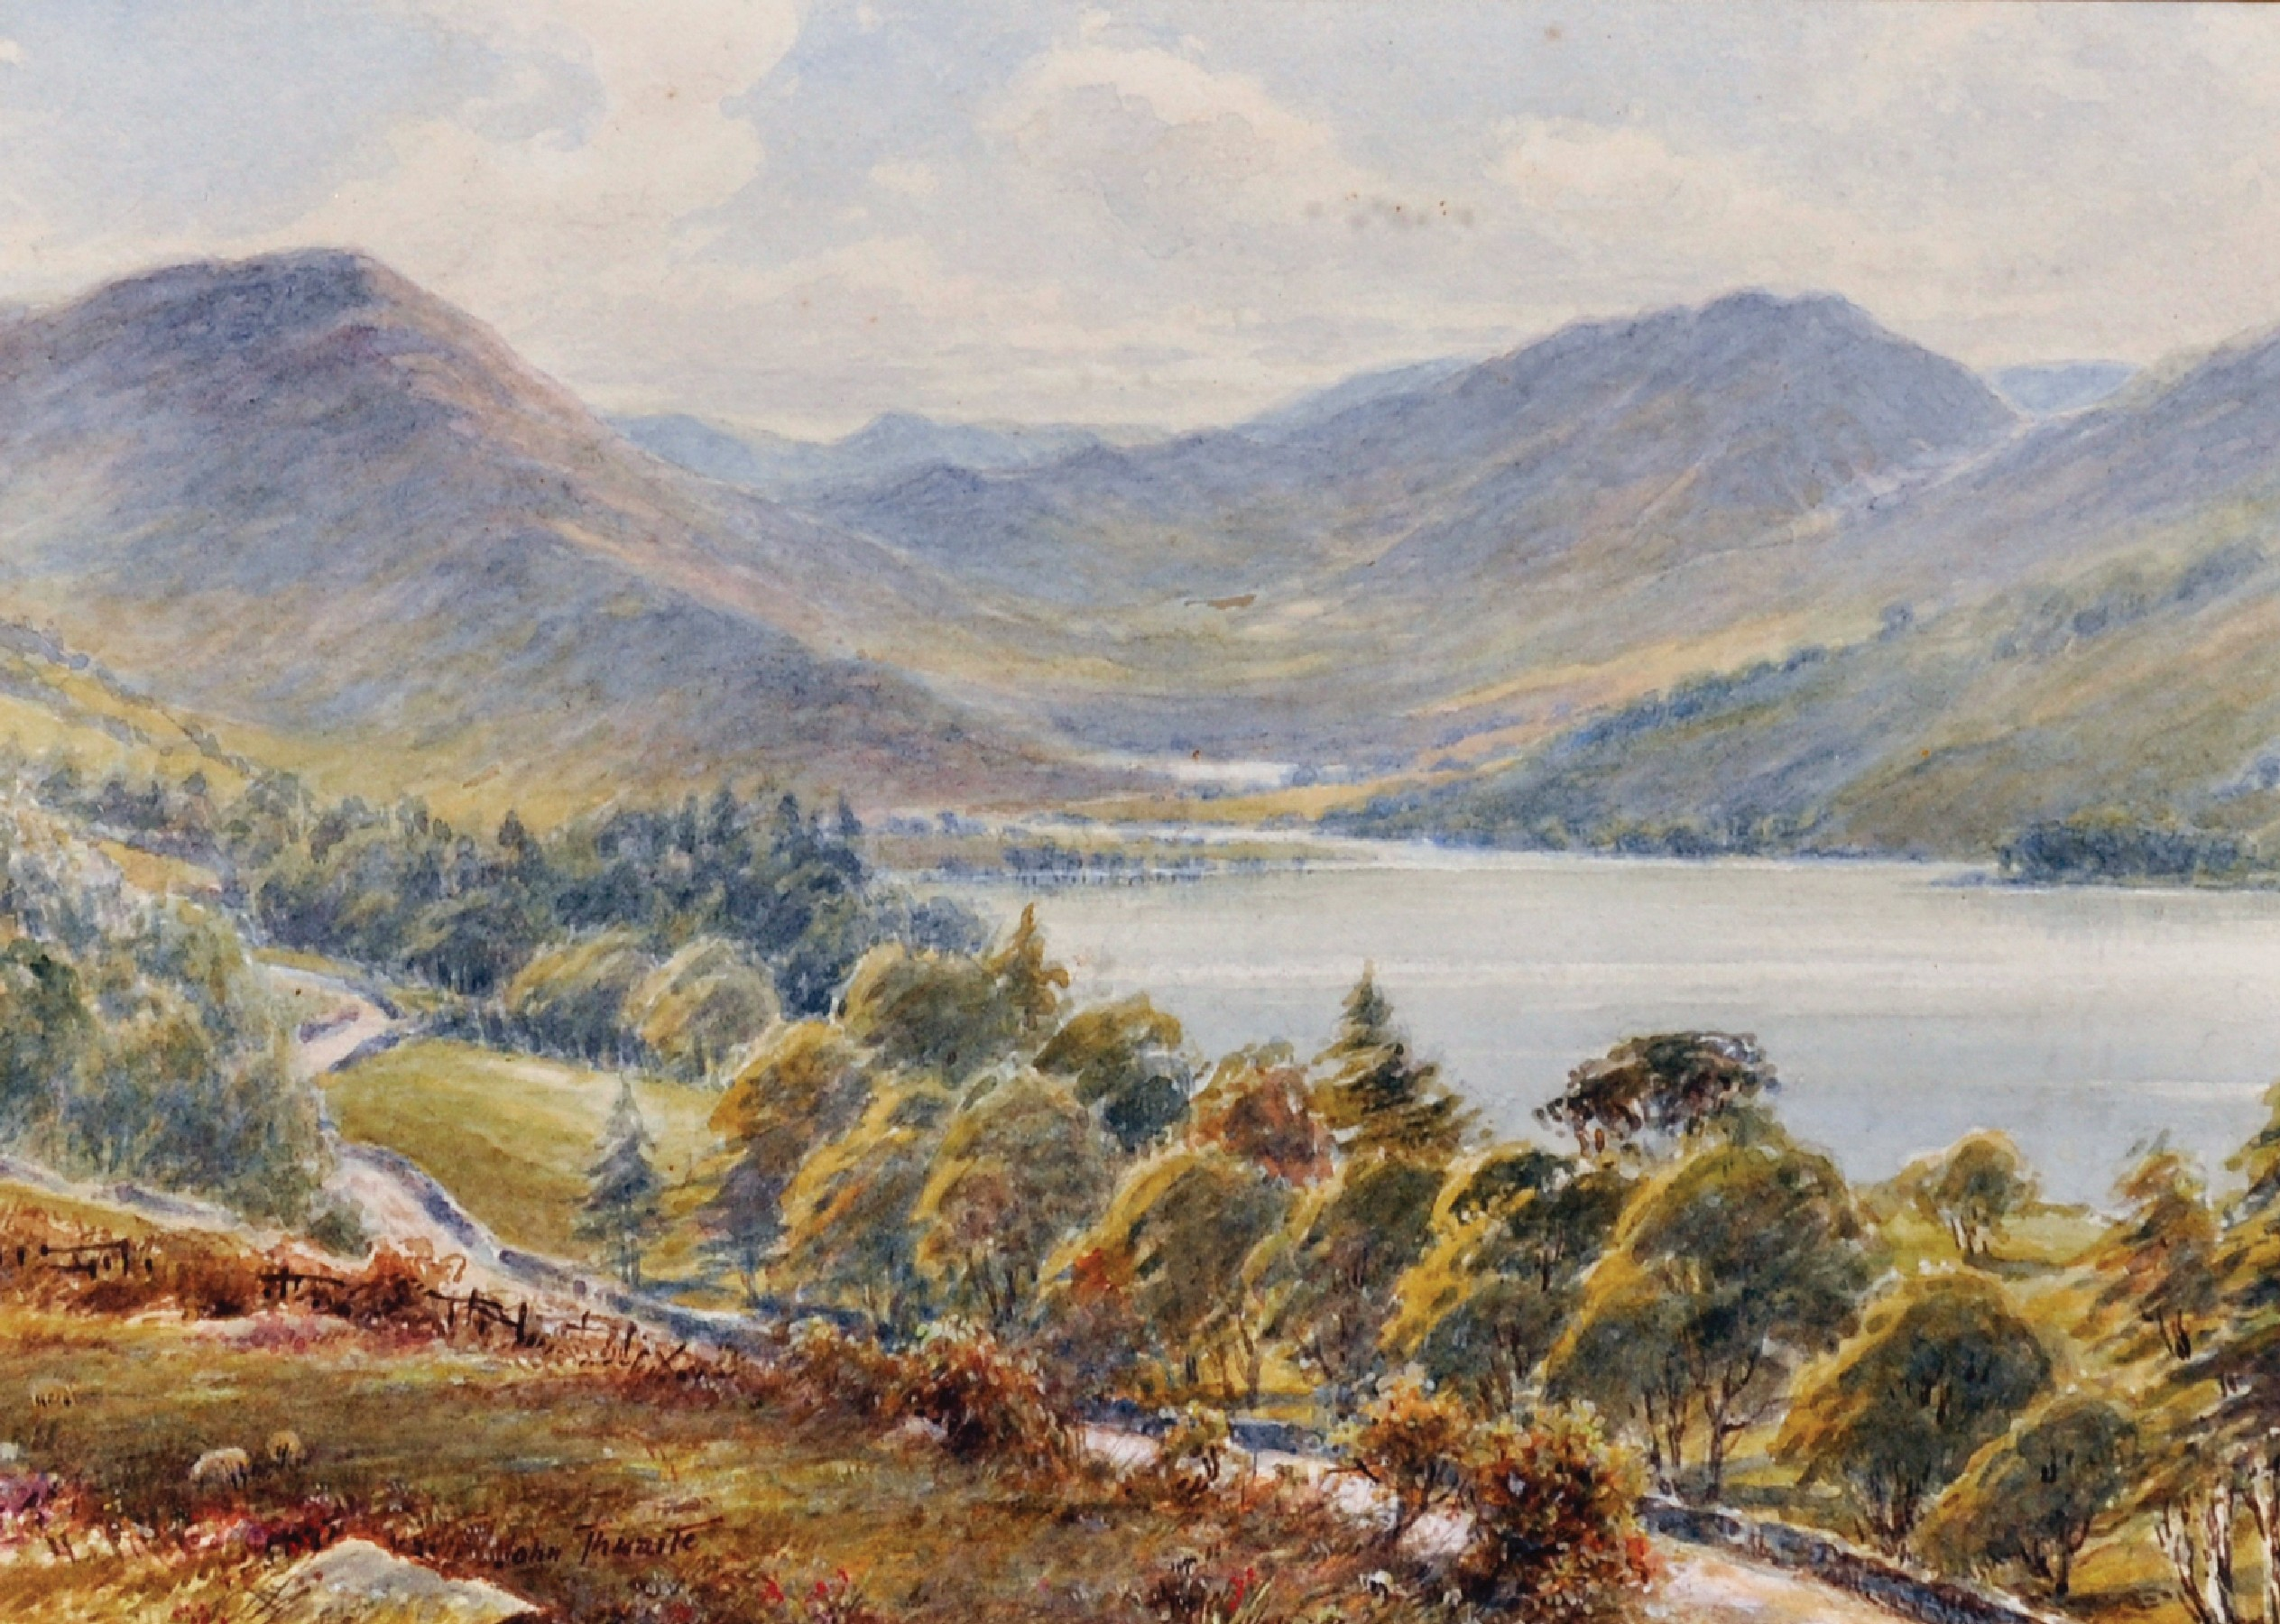 """John Thwaite (19th - 20th Century) British. """"Head of Buttermere"""", Watercolour, Signed, and Inscribed"""